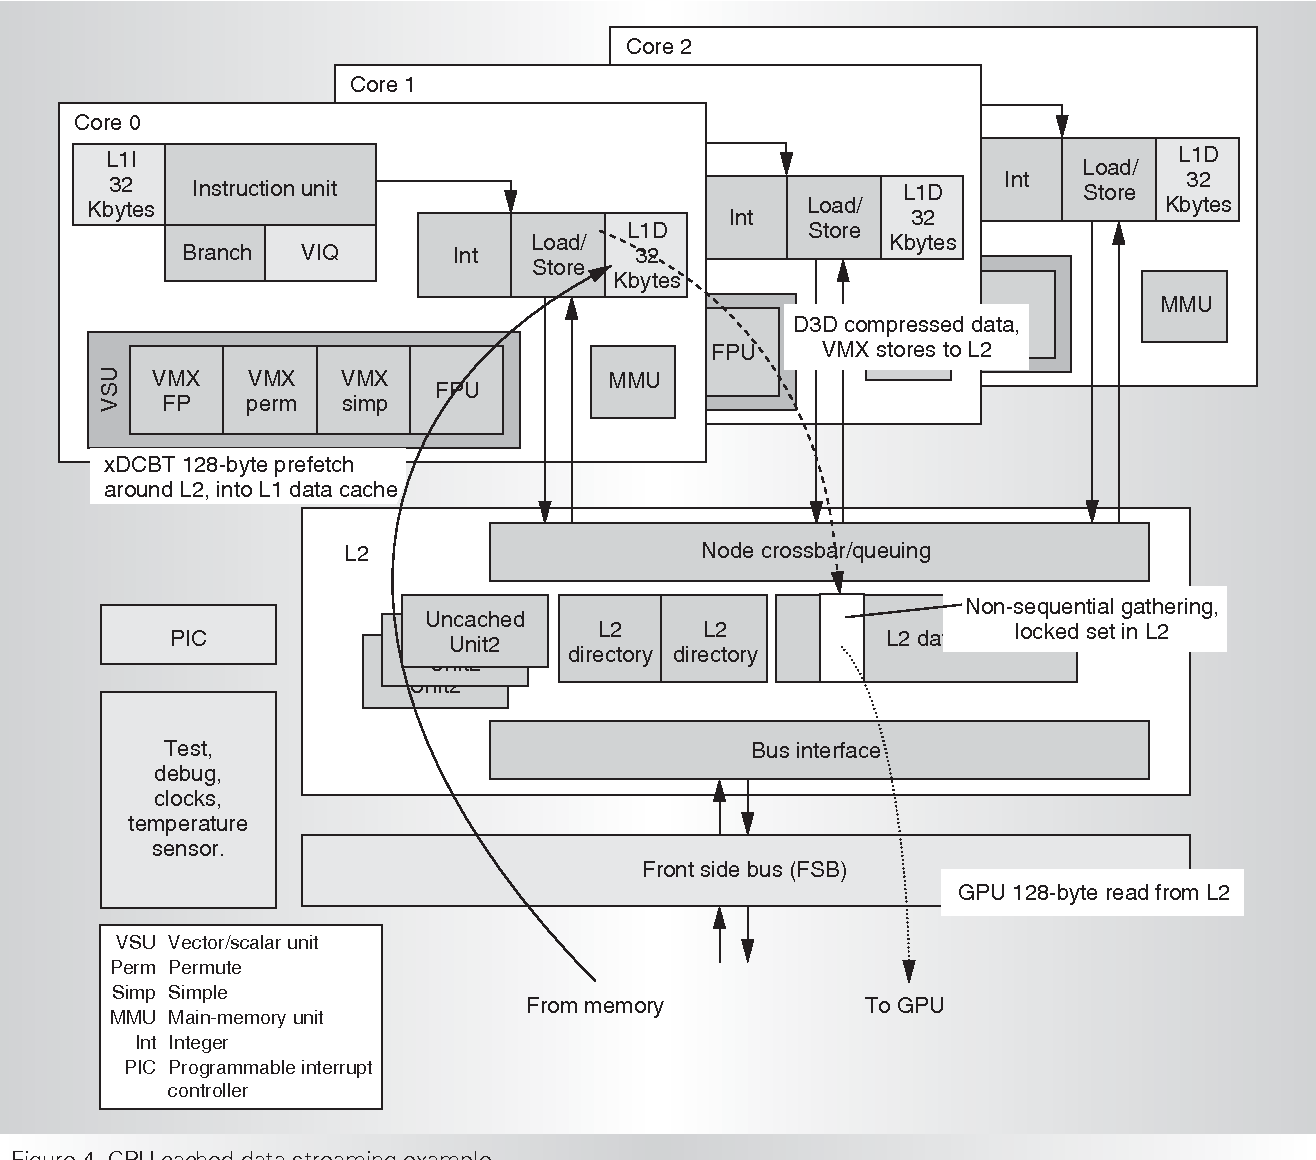 Xbox 360 system diagram basic guide wiring diagram xbox 360 system architecture semantic scholar rh semanticscholar org xbox 360 console xbox 360 motherboard ccuart Image collections